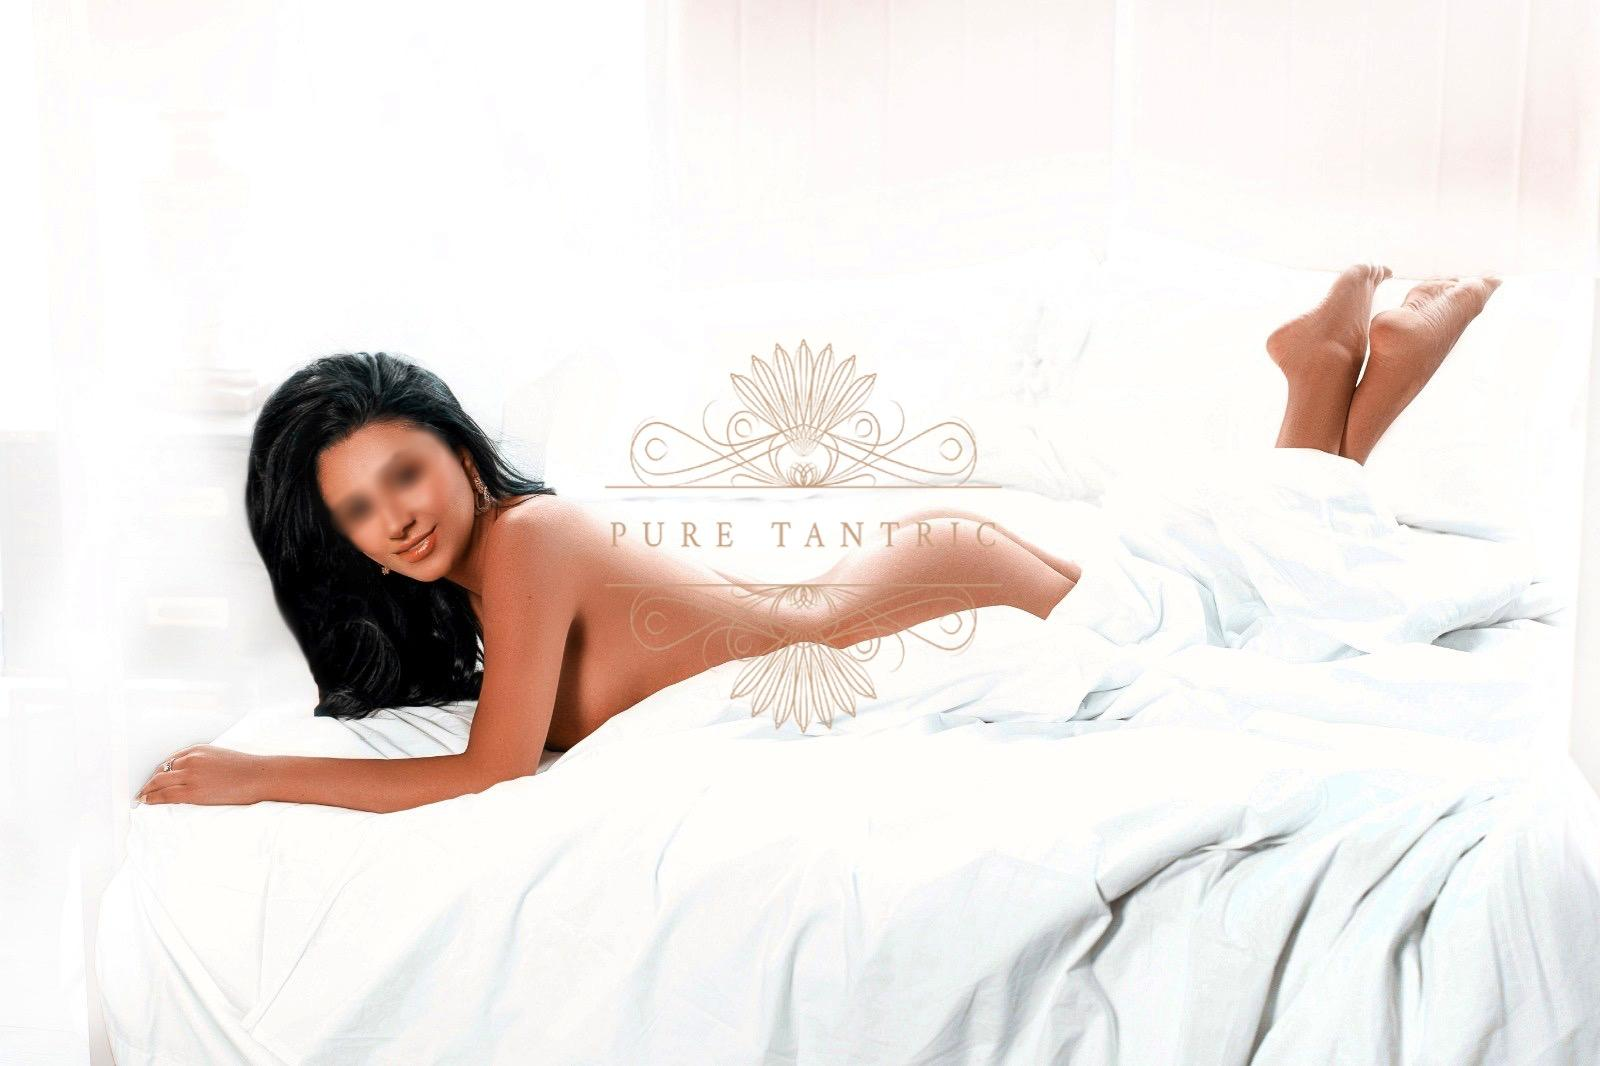 Sara from Pure Tantric Manchester